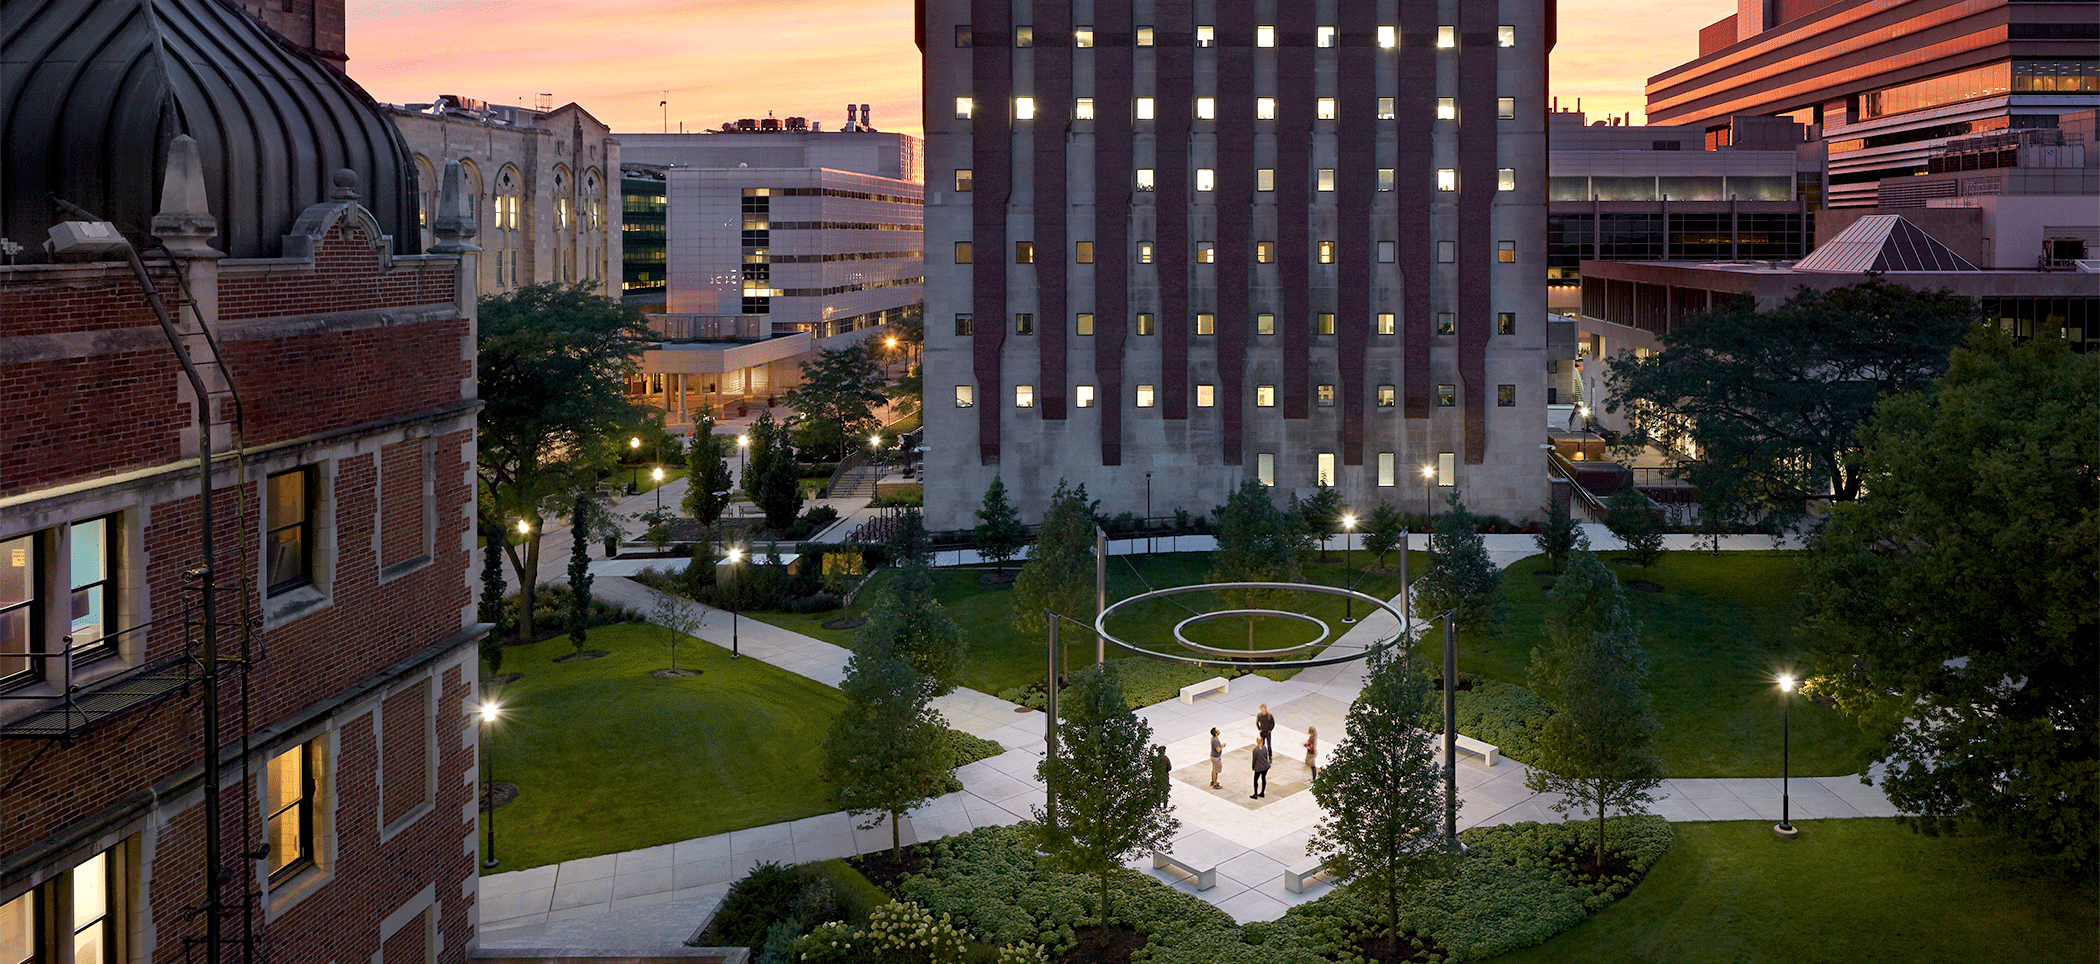 Crerar Science Quadrangle Wins 2019 American Architecture Award and Illumination Award